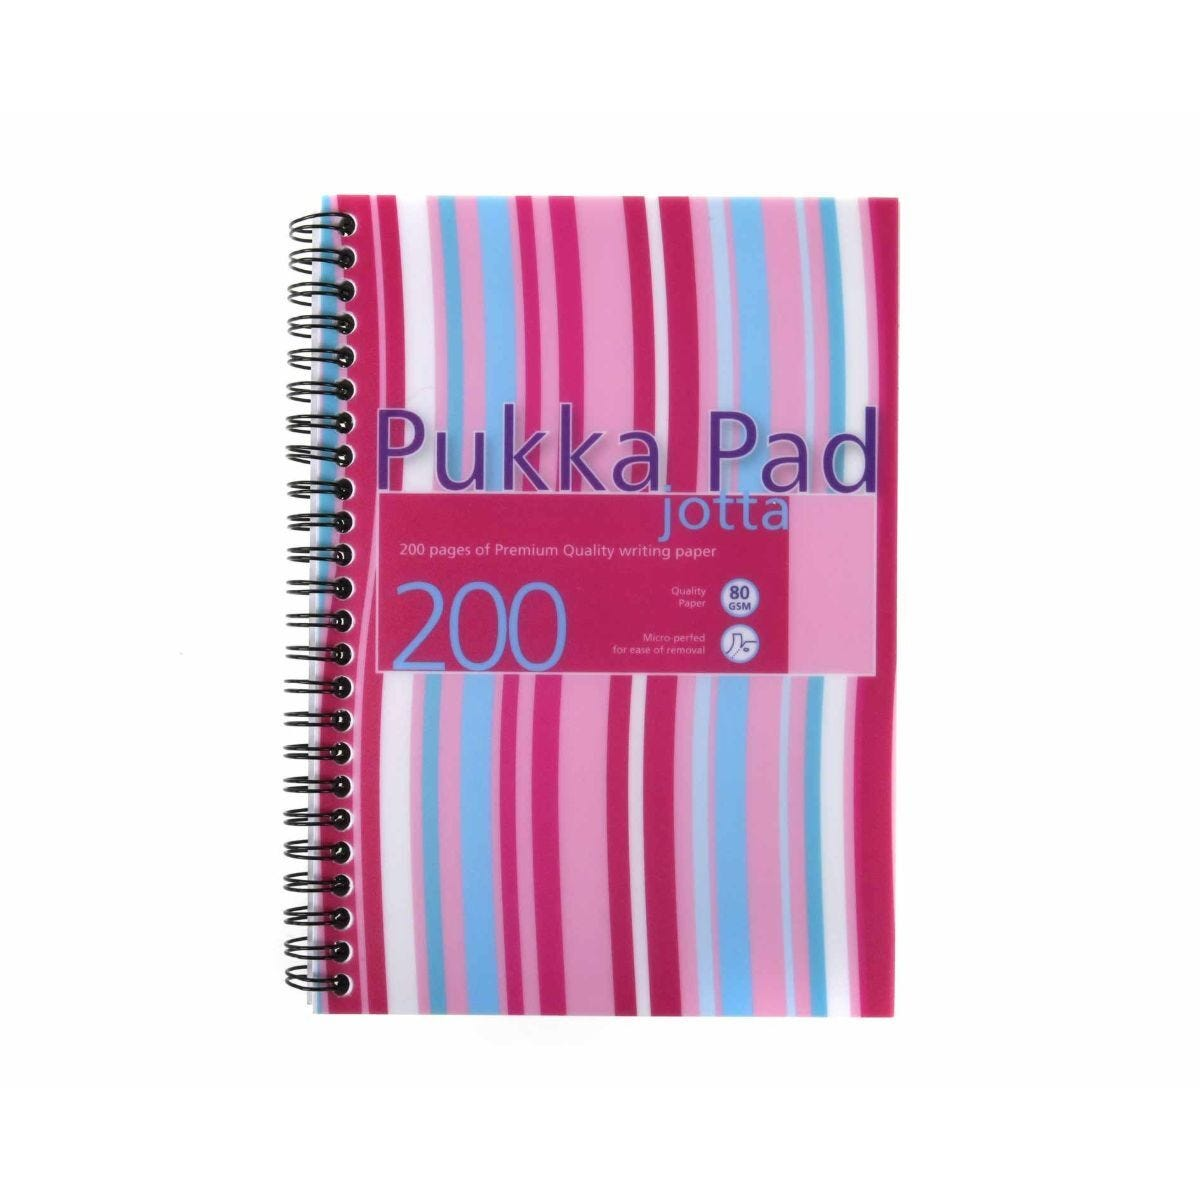 Pukka Jotta Pad A5 80gsm Ruled With Margin Wirebound 200 Pages 100 Sheets